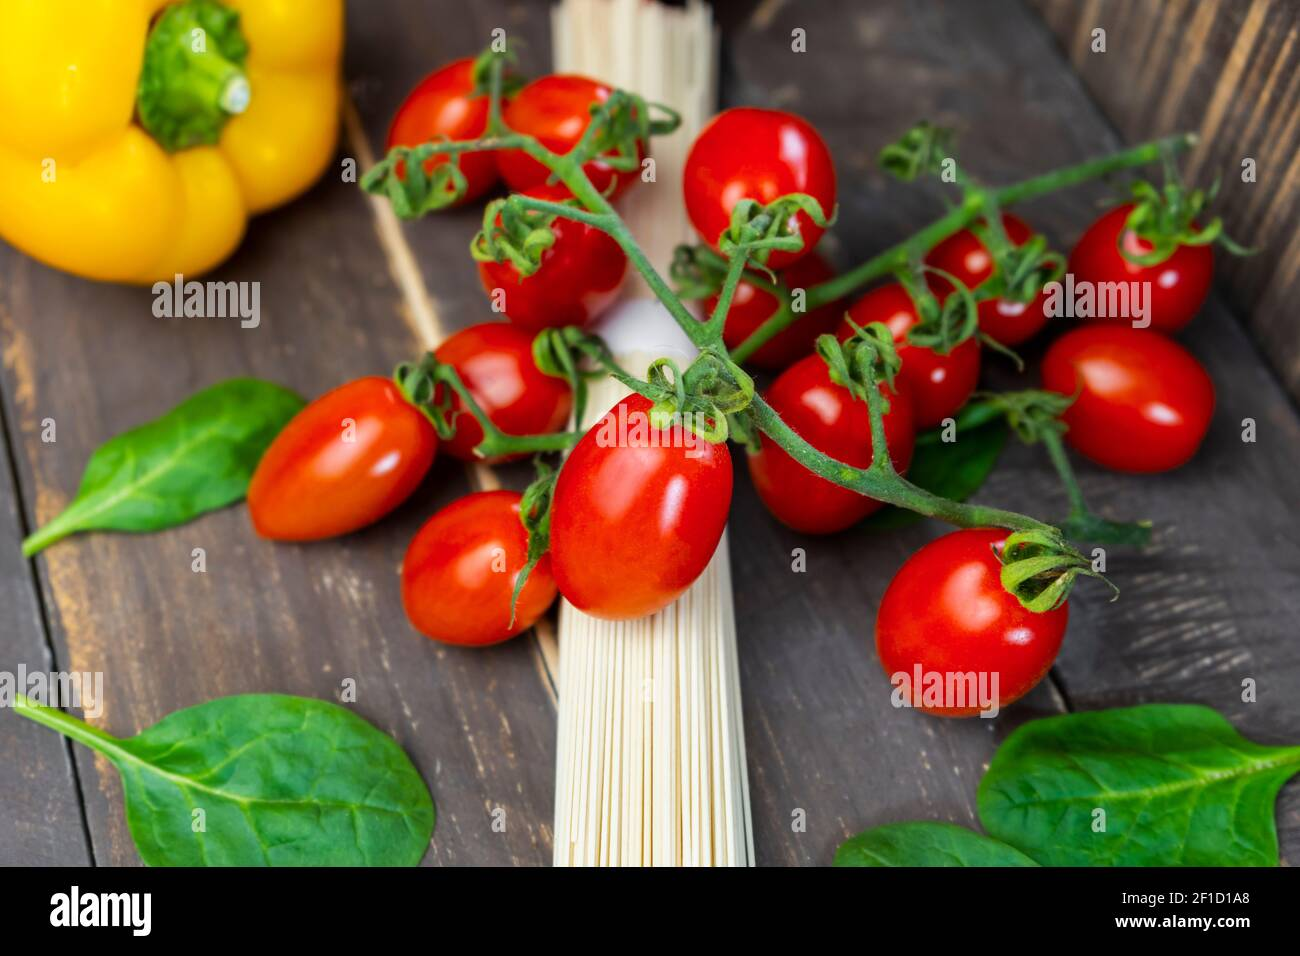 Fresh vegetables with spaghetti pasta on rustic wooden table.Closeup view of dieting food lifestyle ,healthy eating and italian food concept. Stock Photo